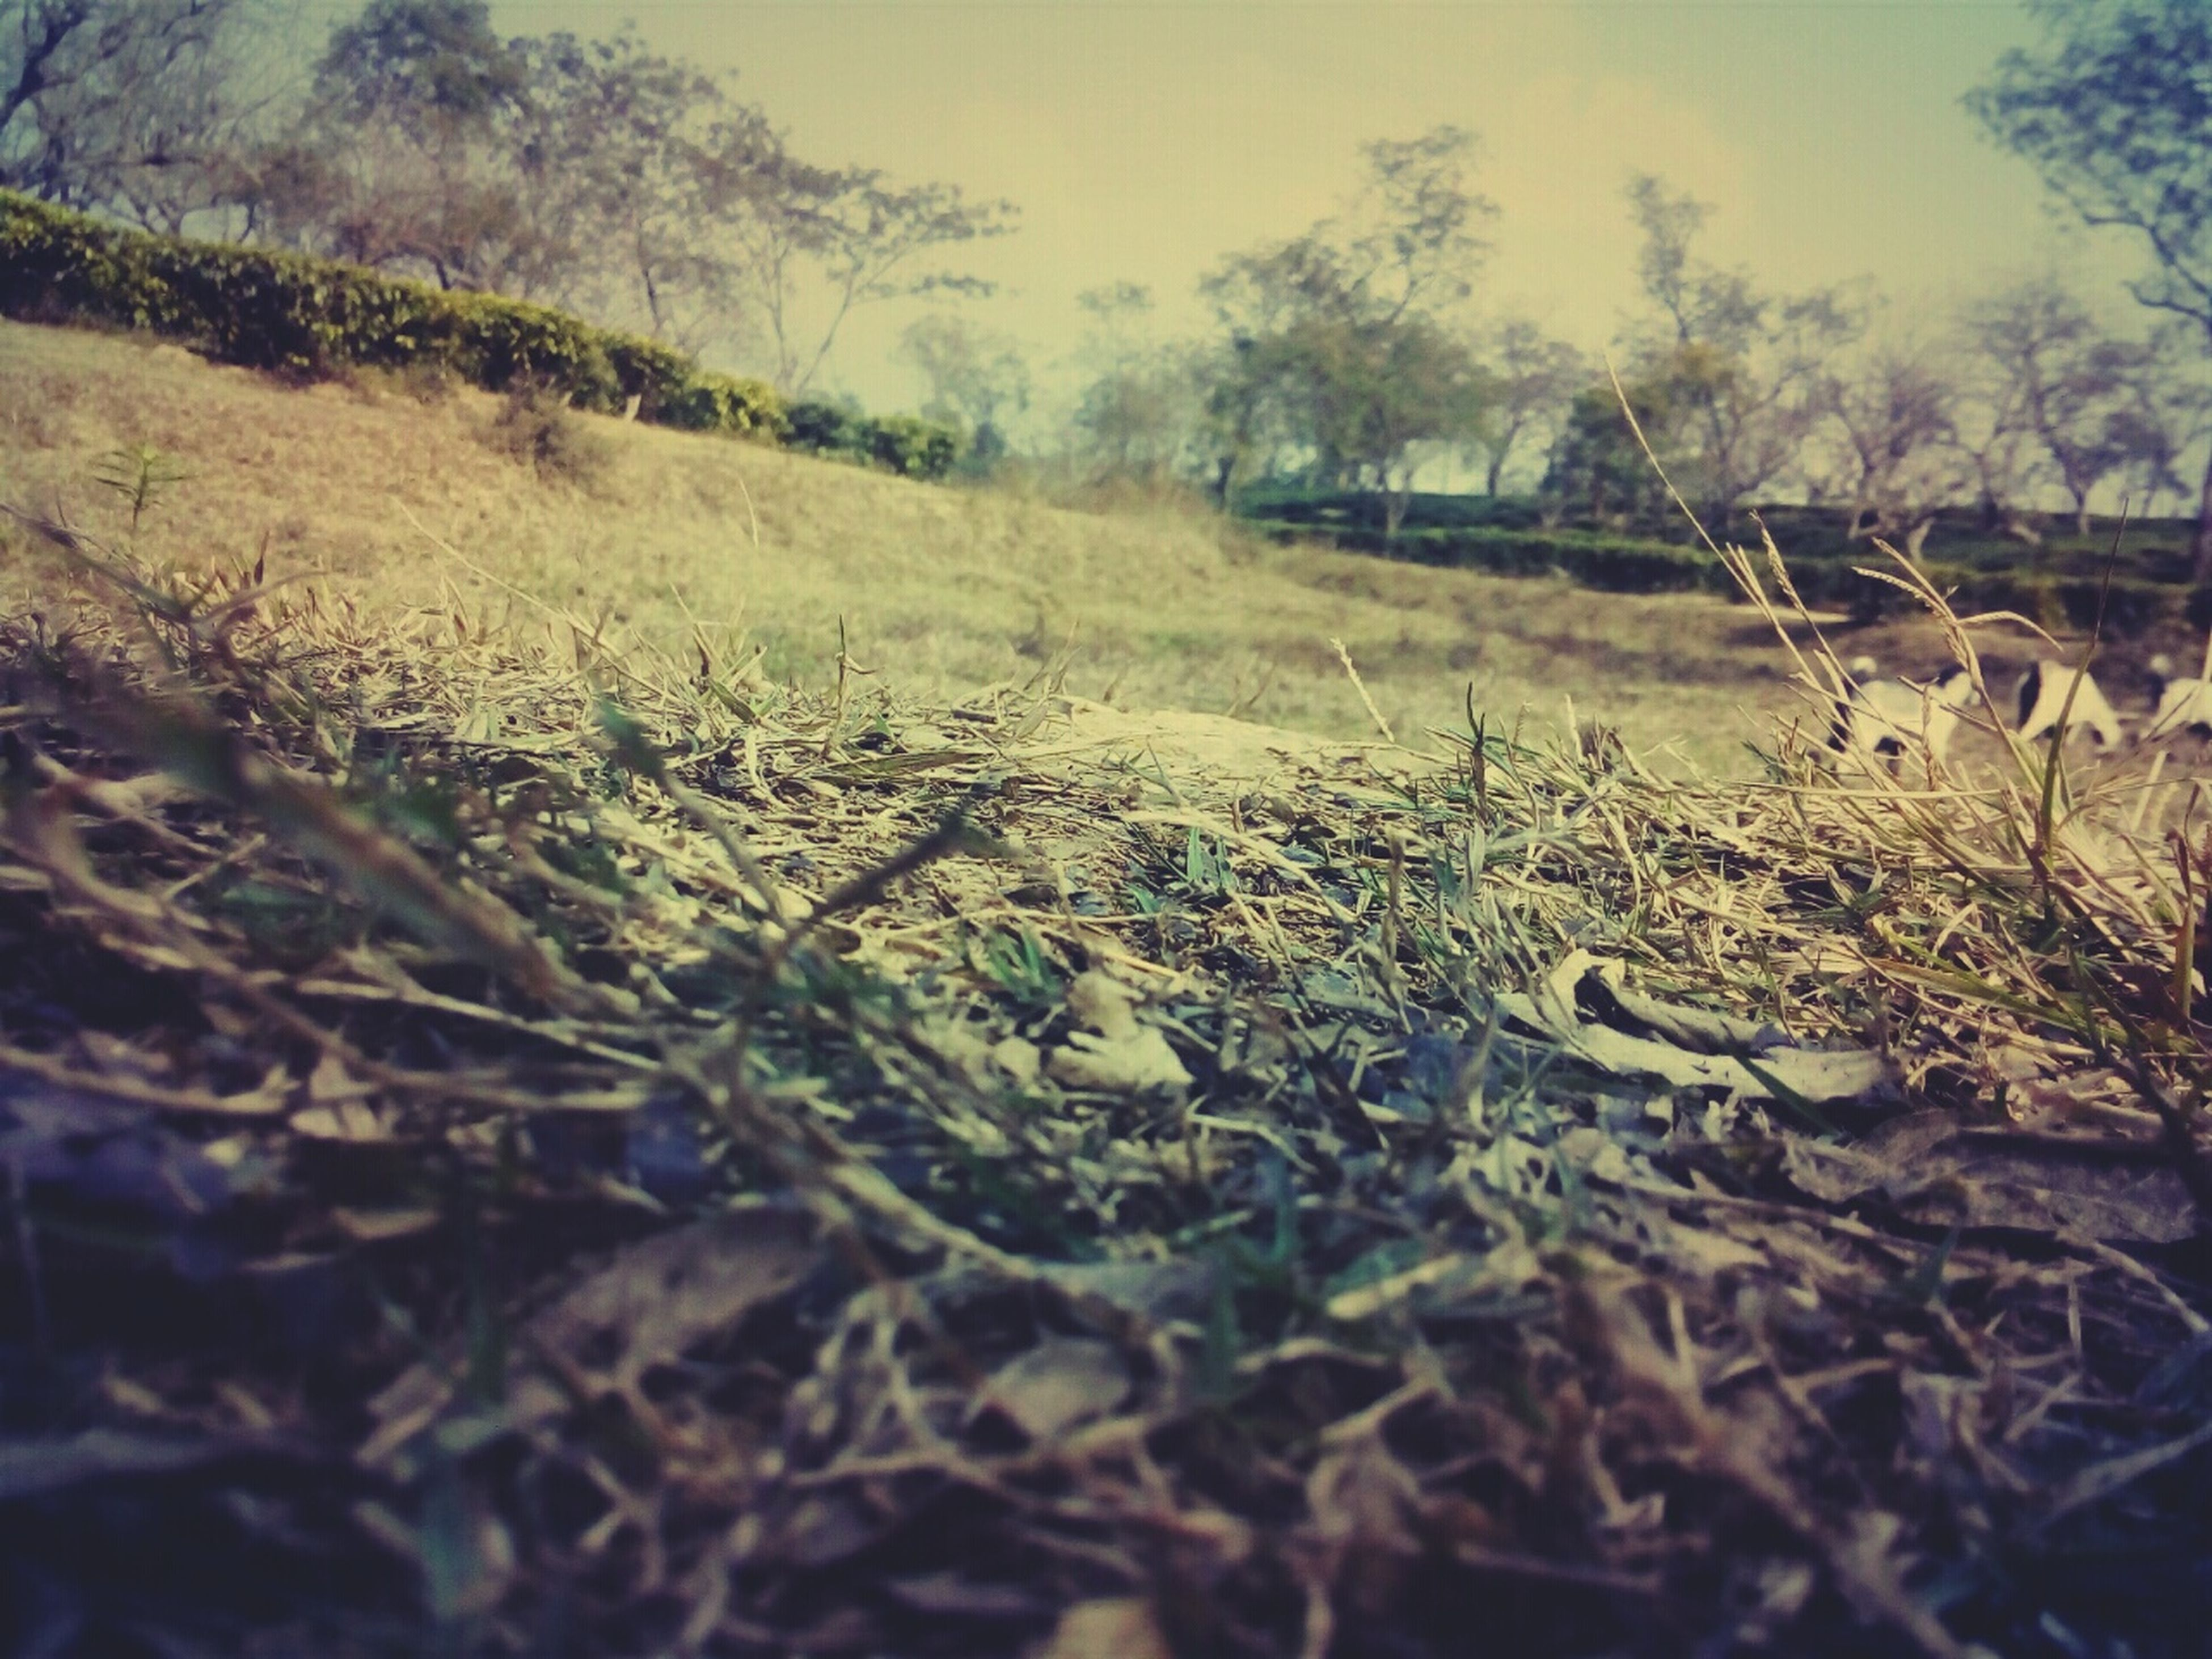 tranquility, field, nature, tree, dry, surface level, grass, tranquil scene, landscape, selective focus, growth, plant, leaf, forest, outdoors, beauty in nature, day, fallen, no people, sunlight